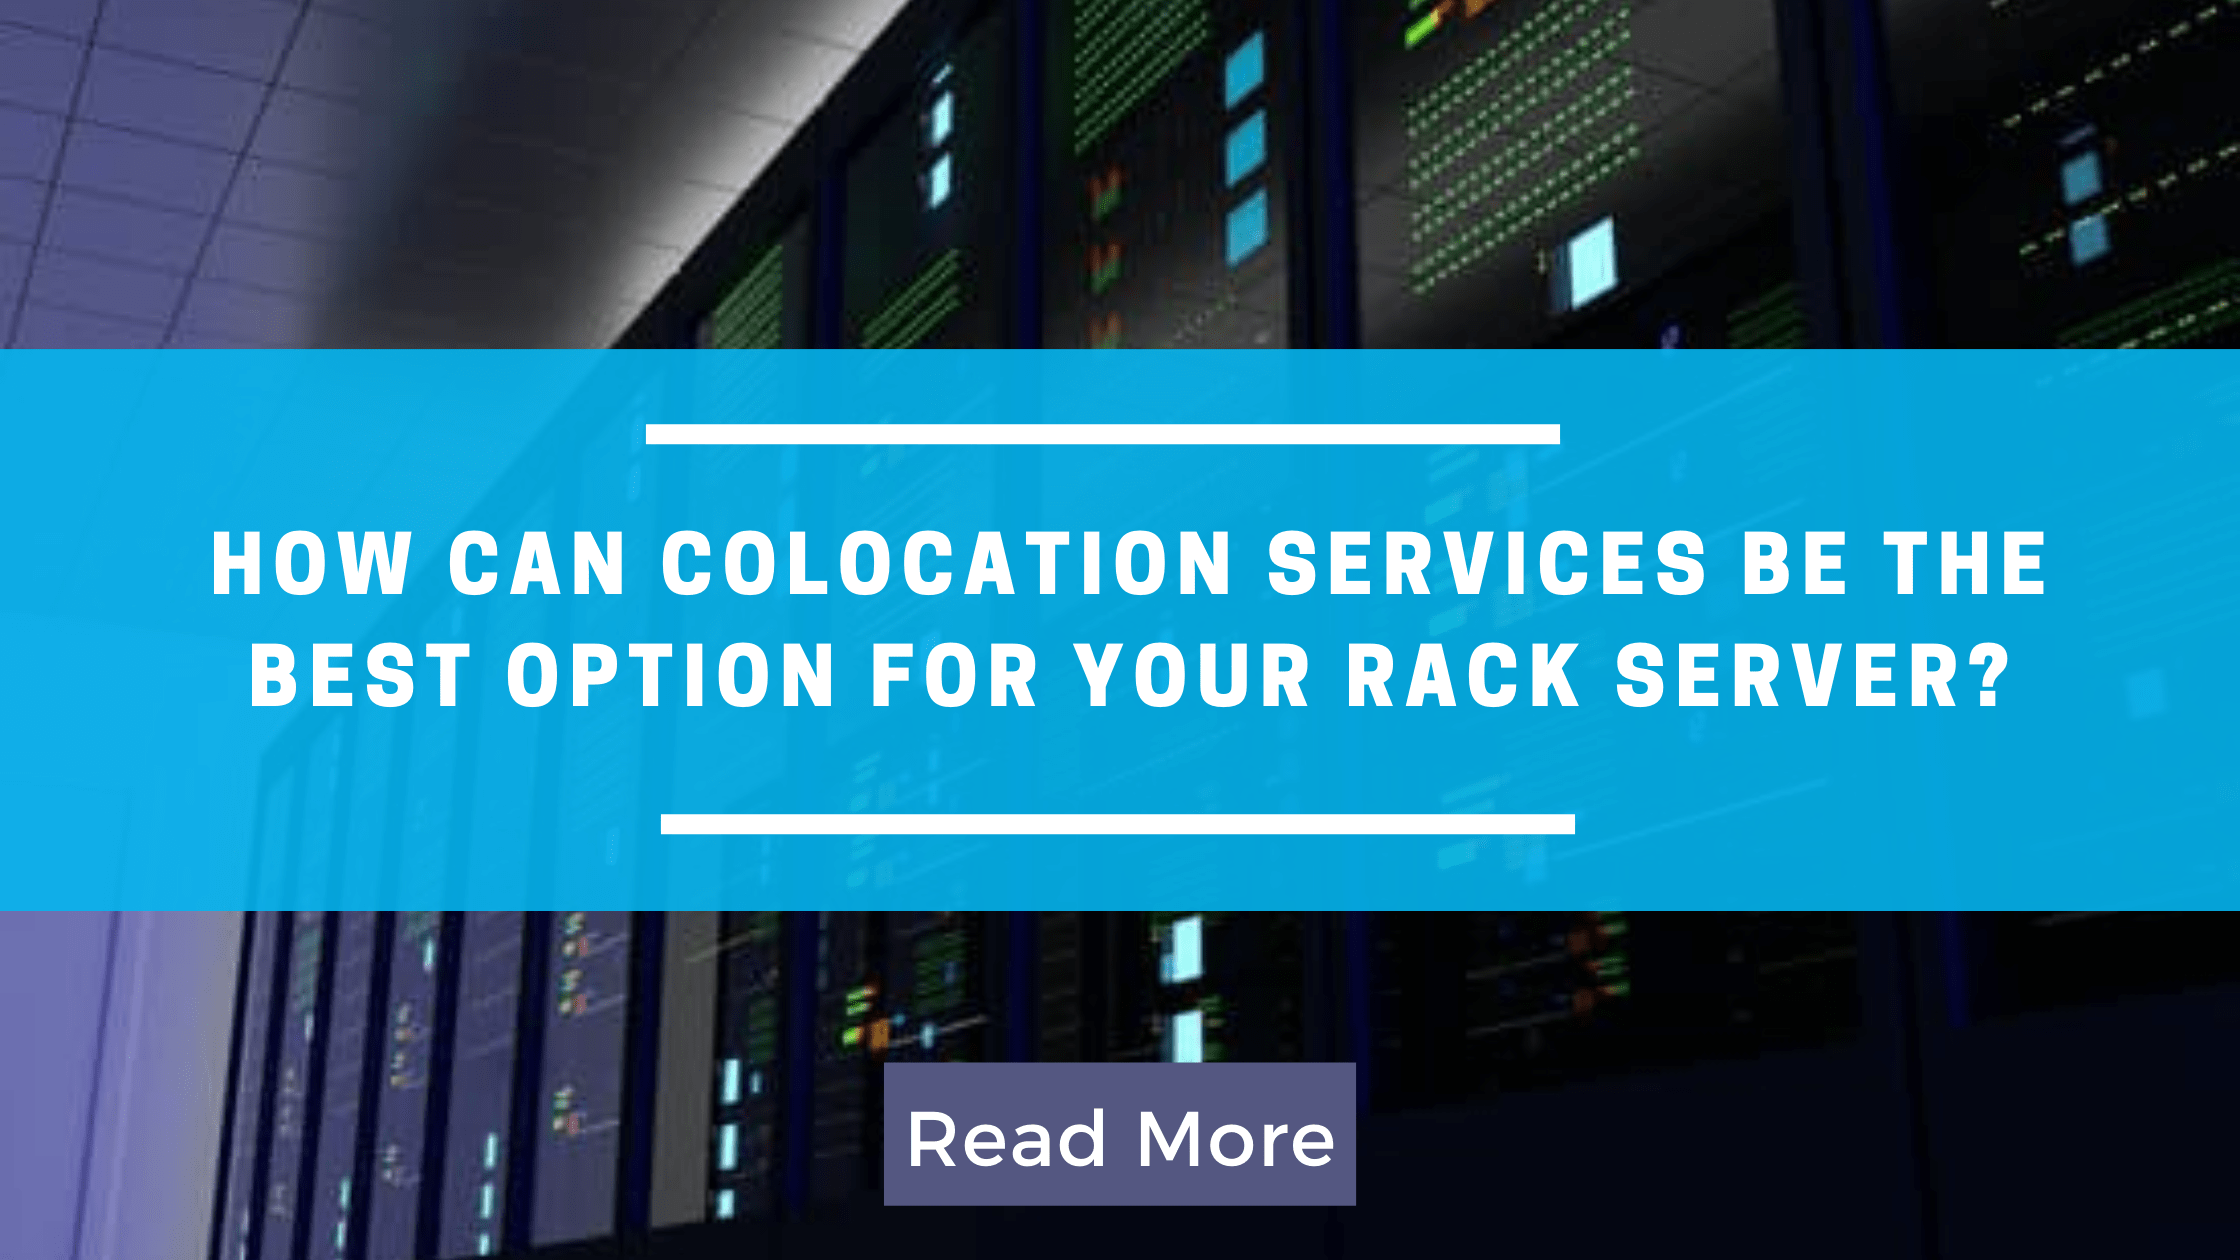 How can Colocation services be the best option for your rack server?